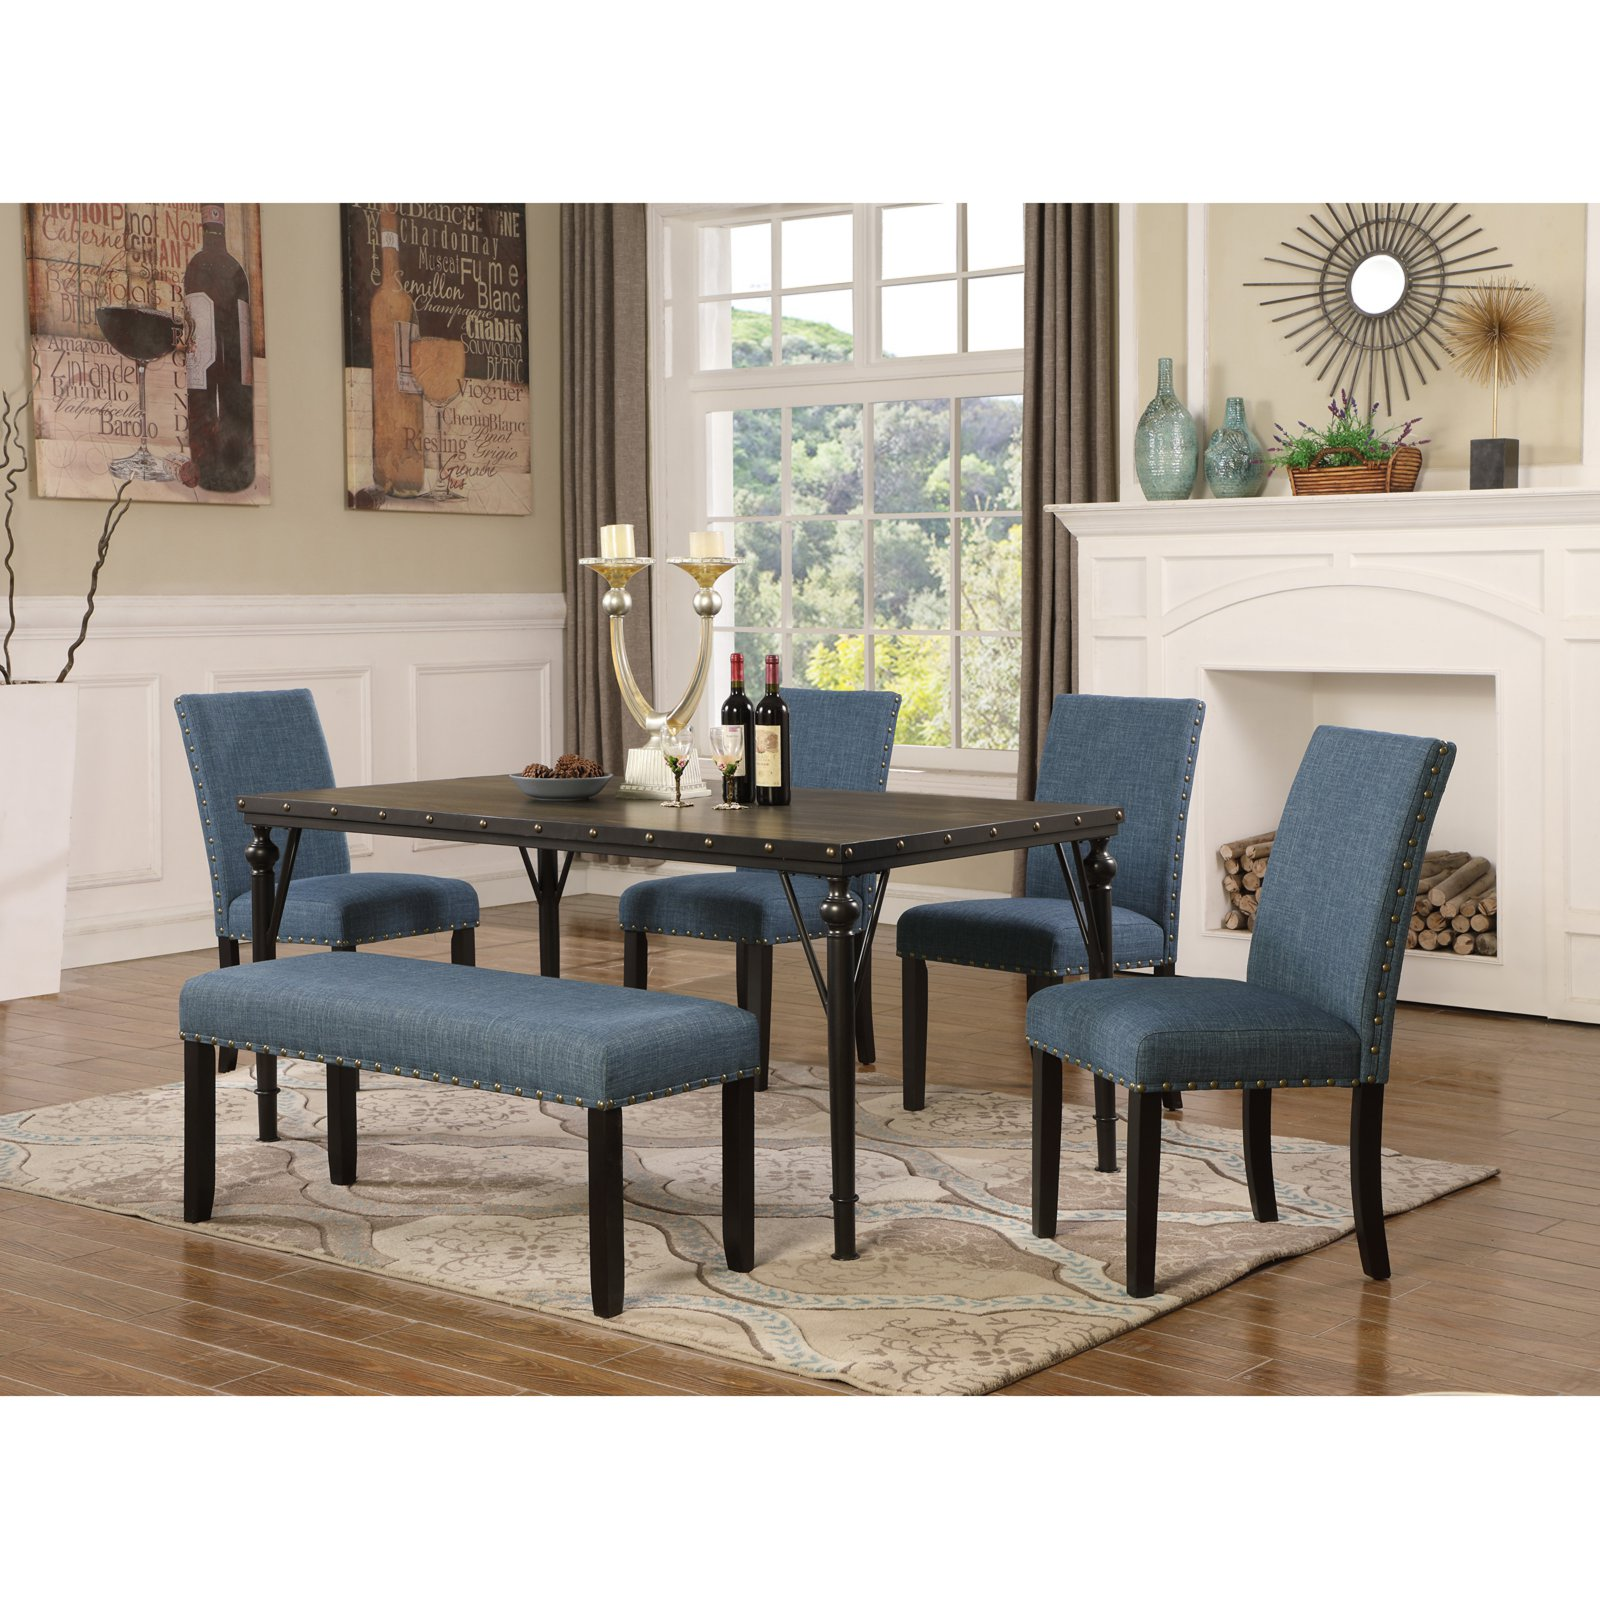 Roundhill Furniture Biony 6 Piece Wooden Dining Table Set